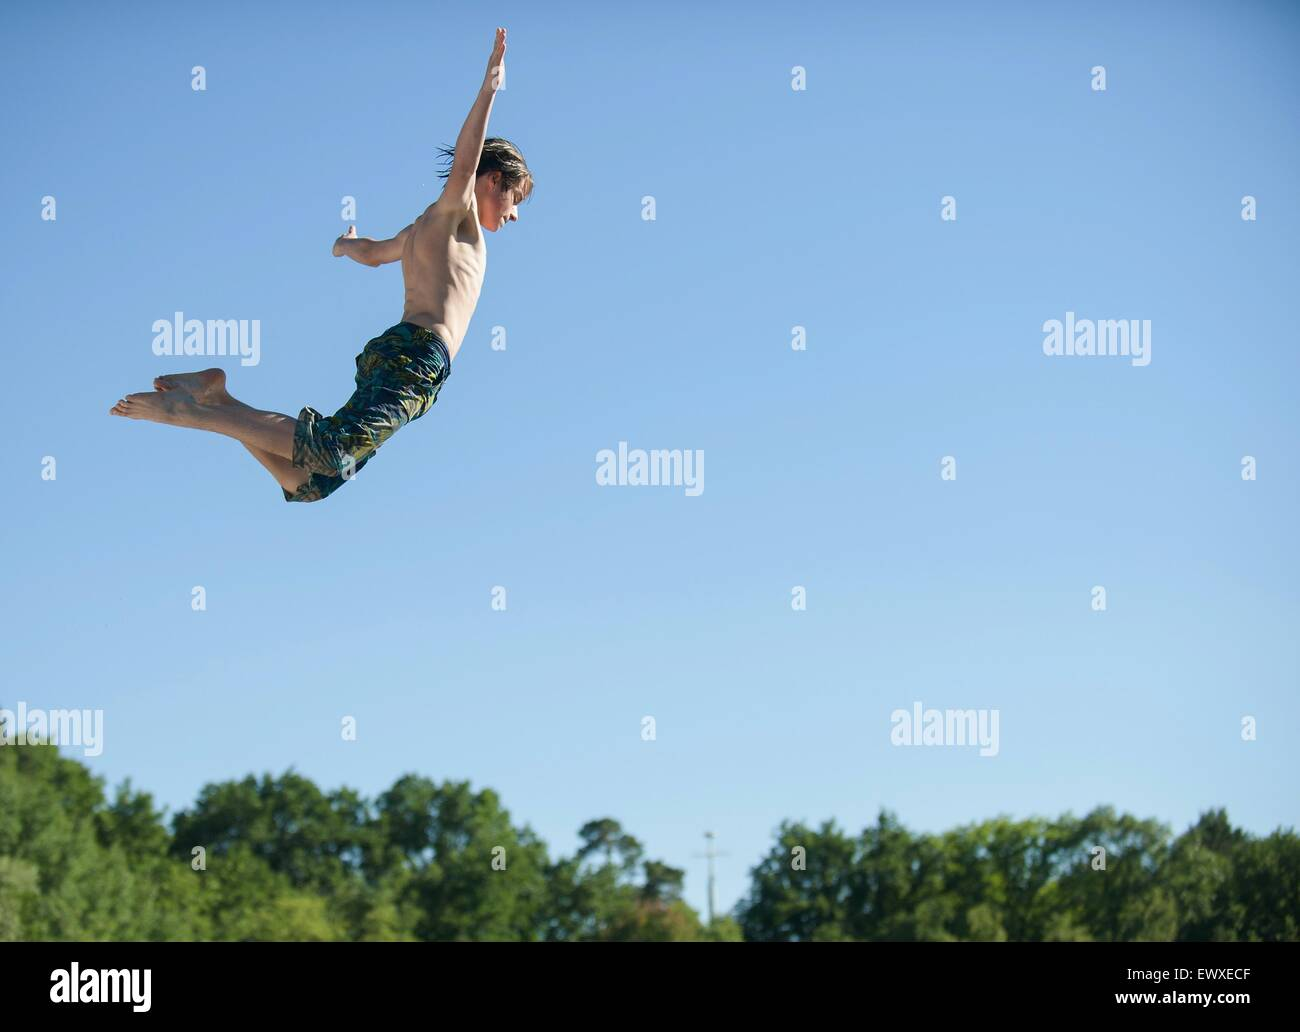 Berlin, Germany. 1st July, 2015. A young man jumps from a jetty into the cold and refreshing water of the 'Flughafensee' - Stock Image